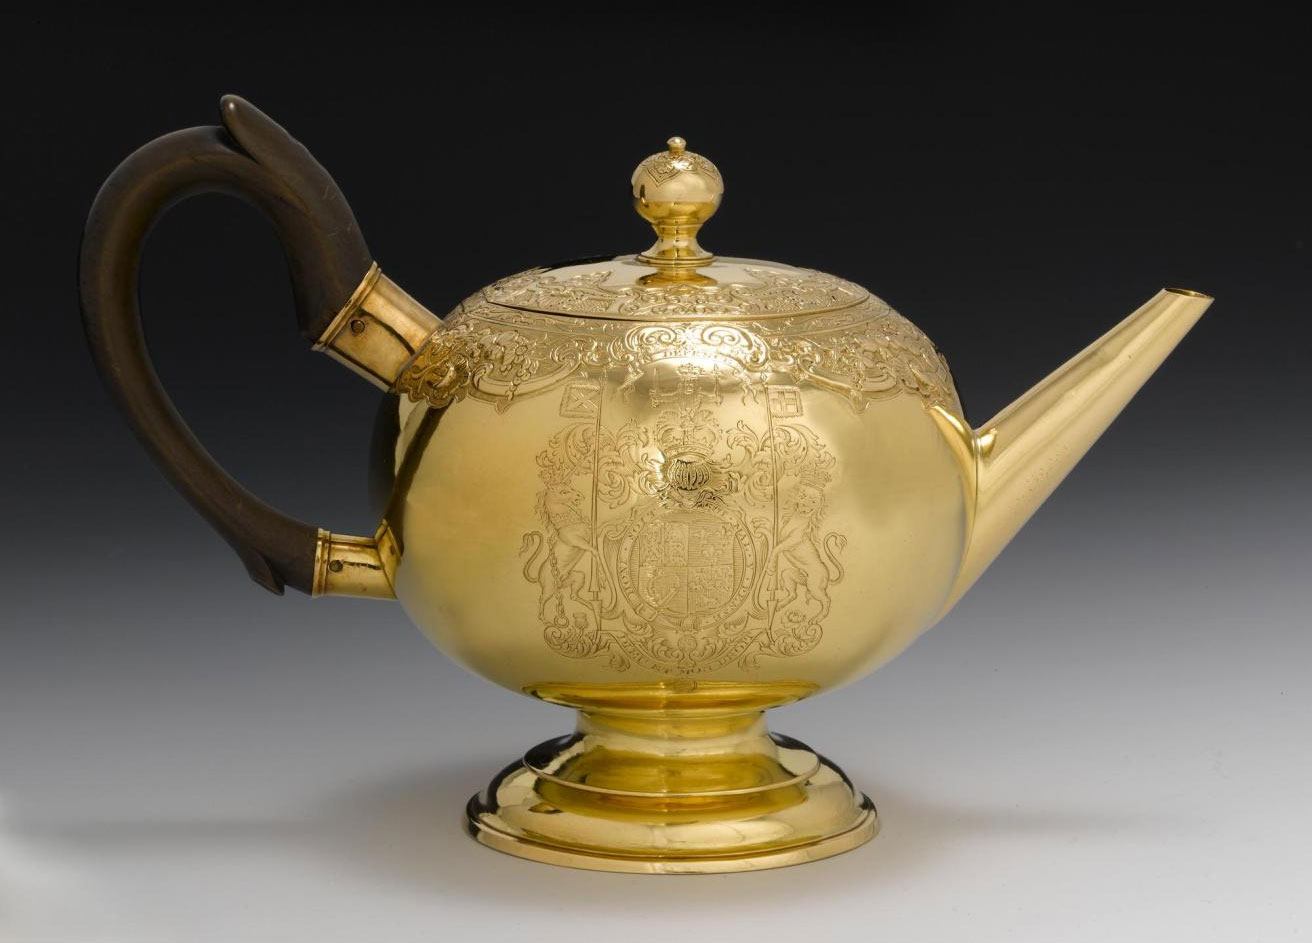 Gold teapot, King's Prize for horse racing, Leith races, 1738, by James Ker, Edinburgh